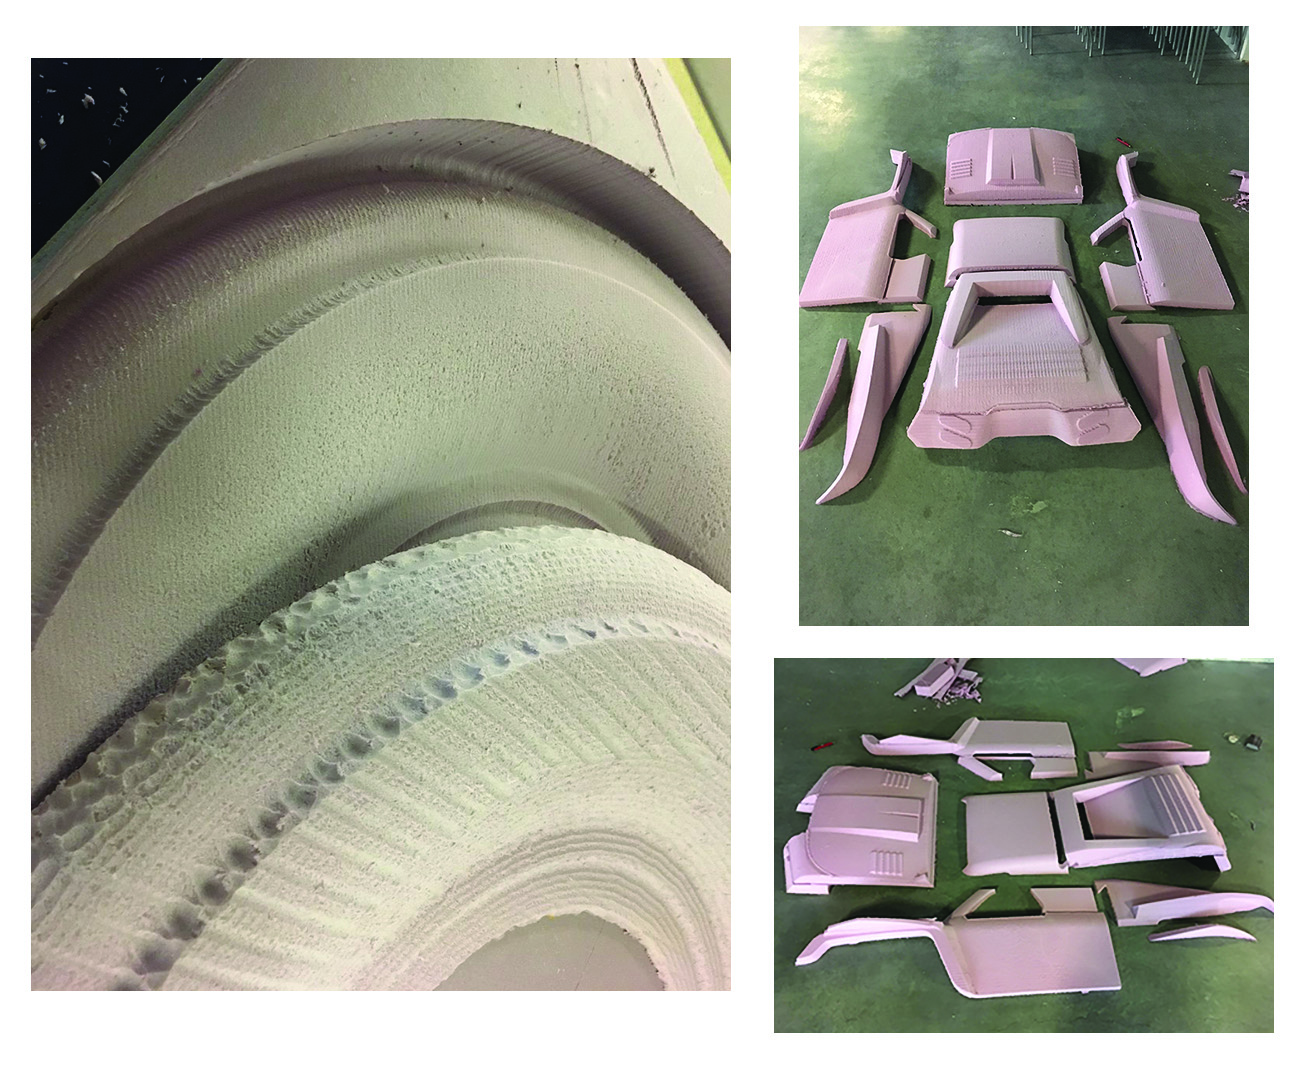 Left: A wheel piece machined with Santiago Laverde's help vs. a wheel piece machined without. Note the absence of ridges on the new piece. Right: The finished truck body parts